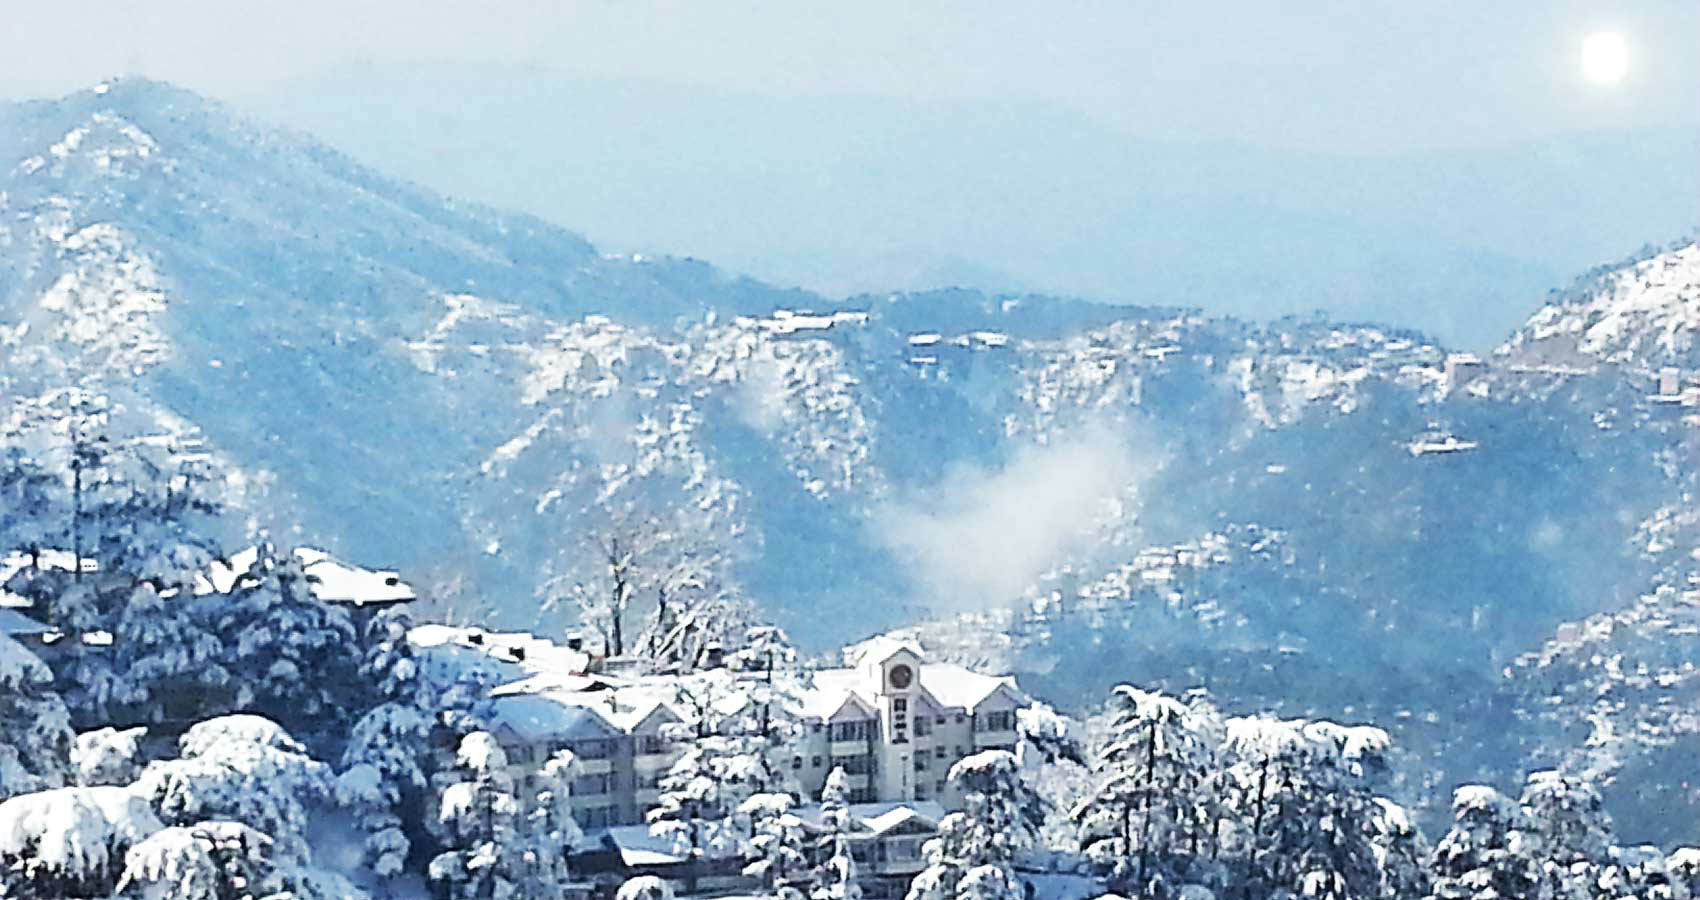 SHIMLA Photos, Images And Wallpapers, HD Images, Near By